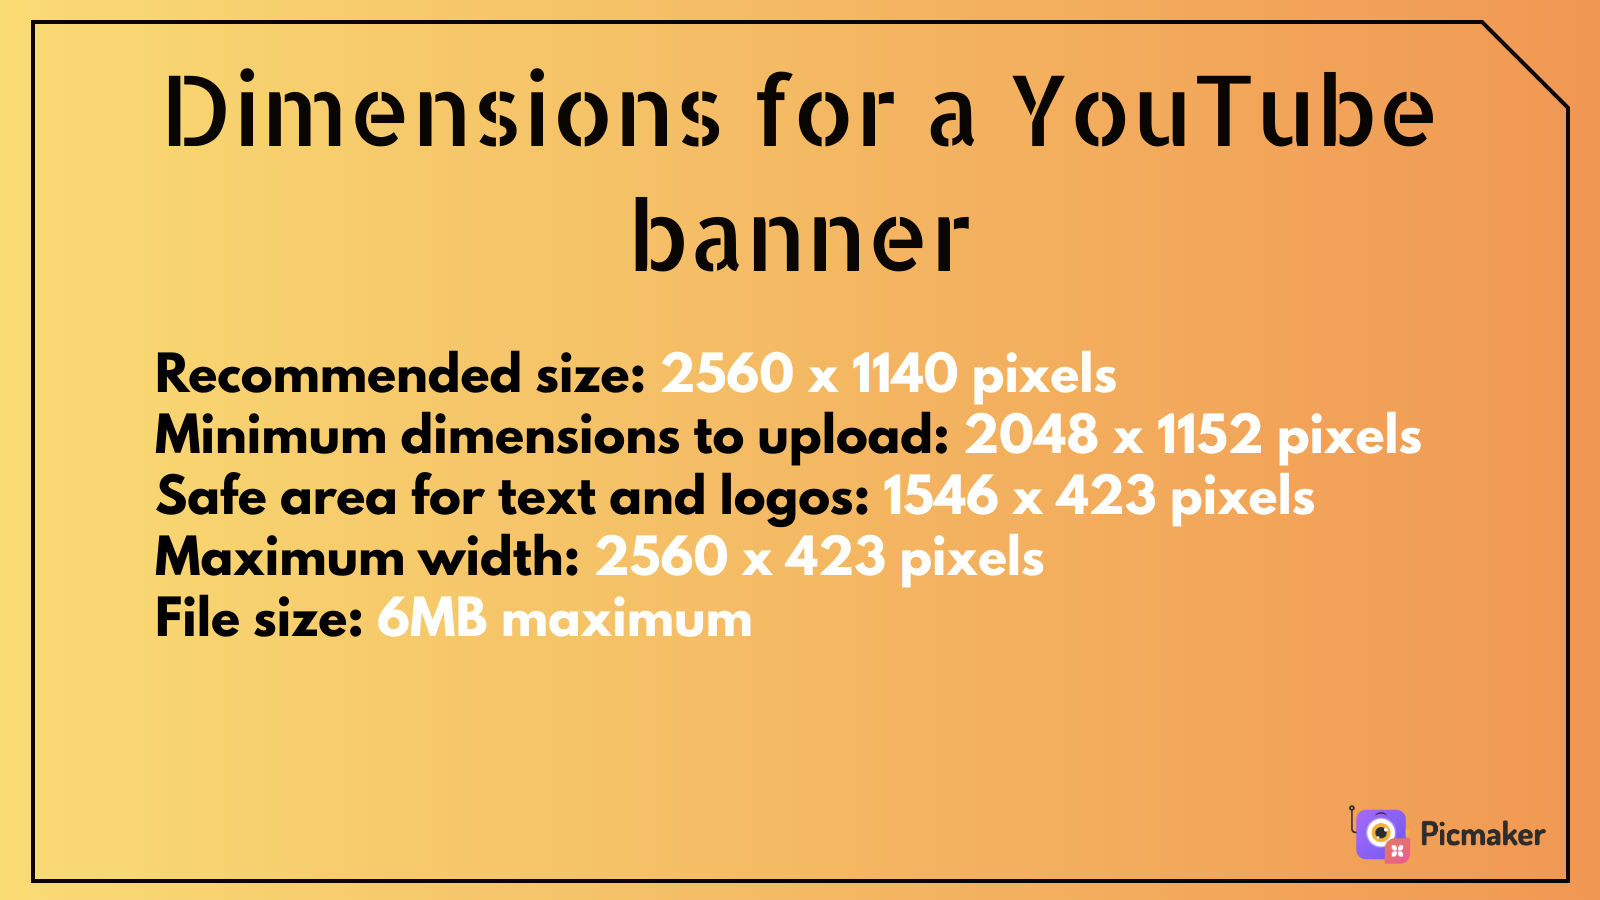 Average size of a YouTube banner - Picmaker